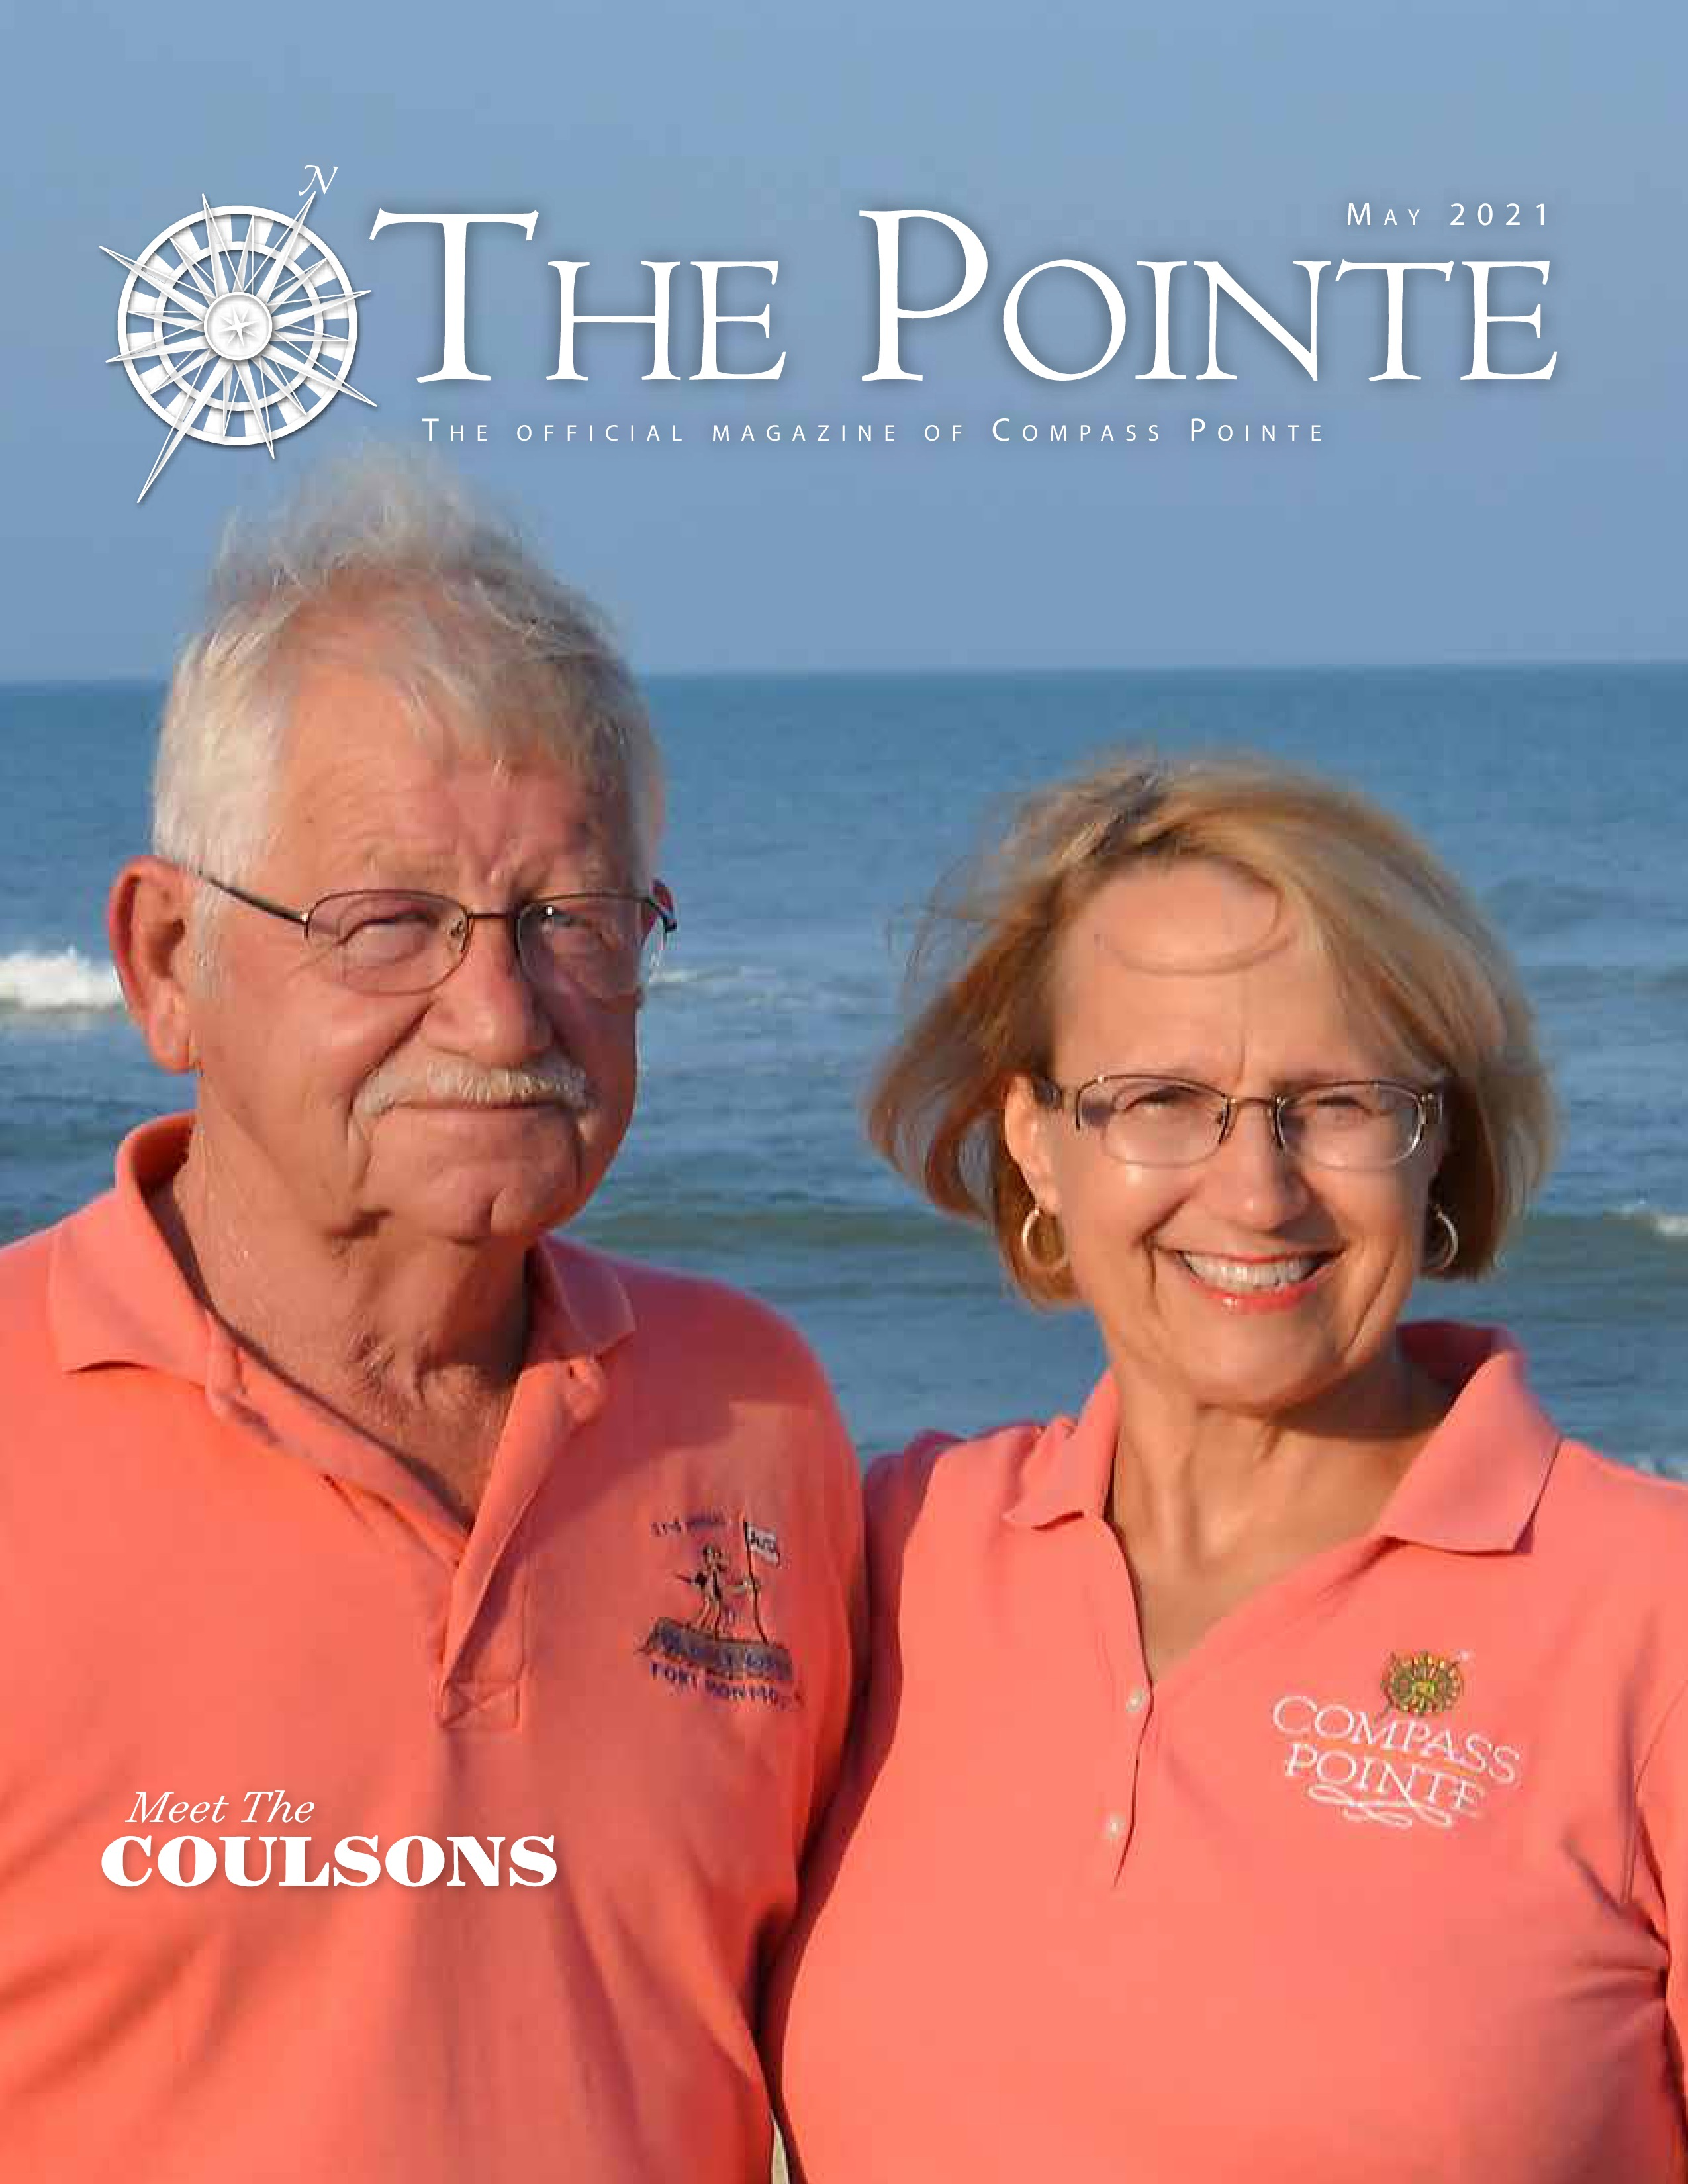 The Pointe 2021-05-01